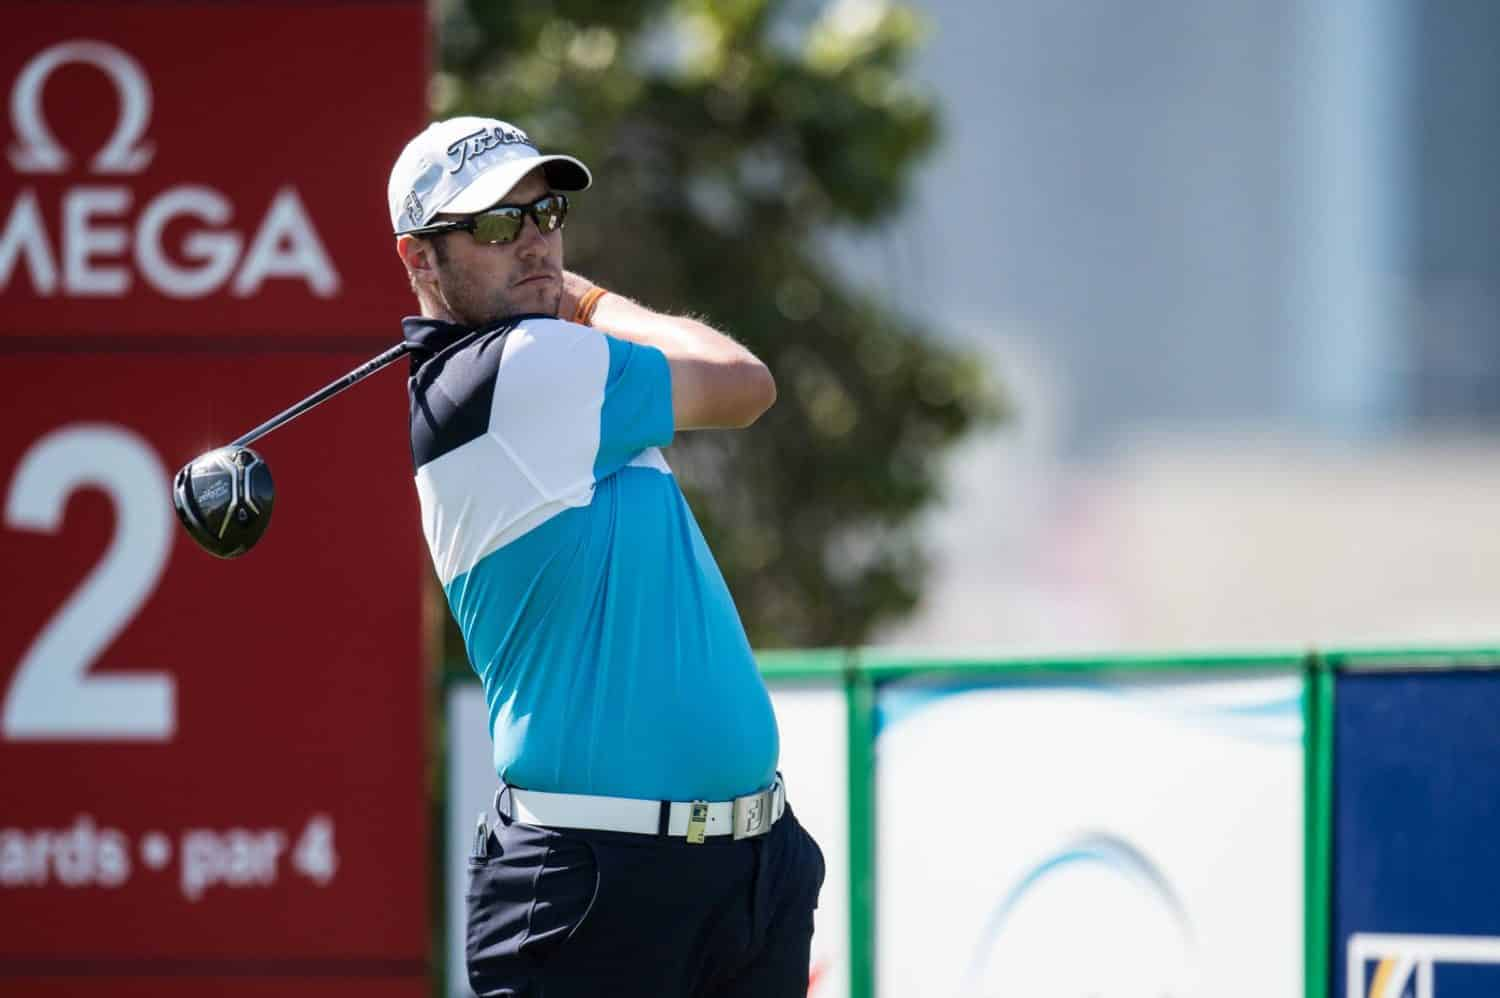 Bizarre Situation Leads To Four Stroke Penalty On Web.com Tour